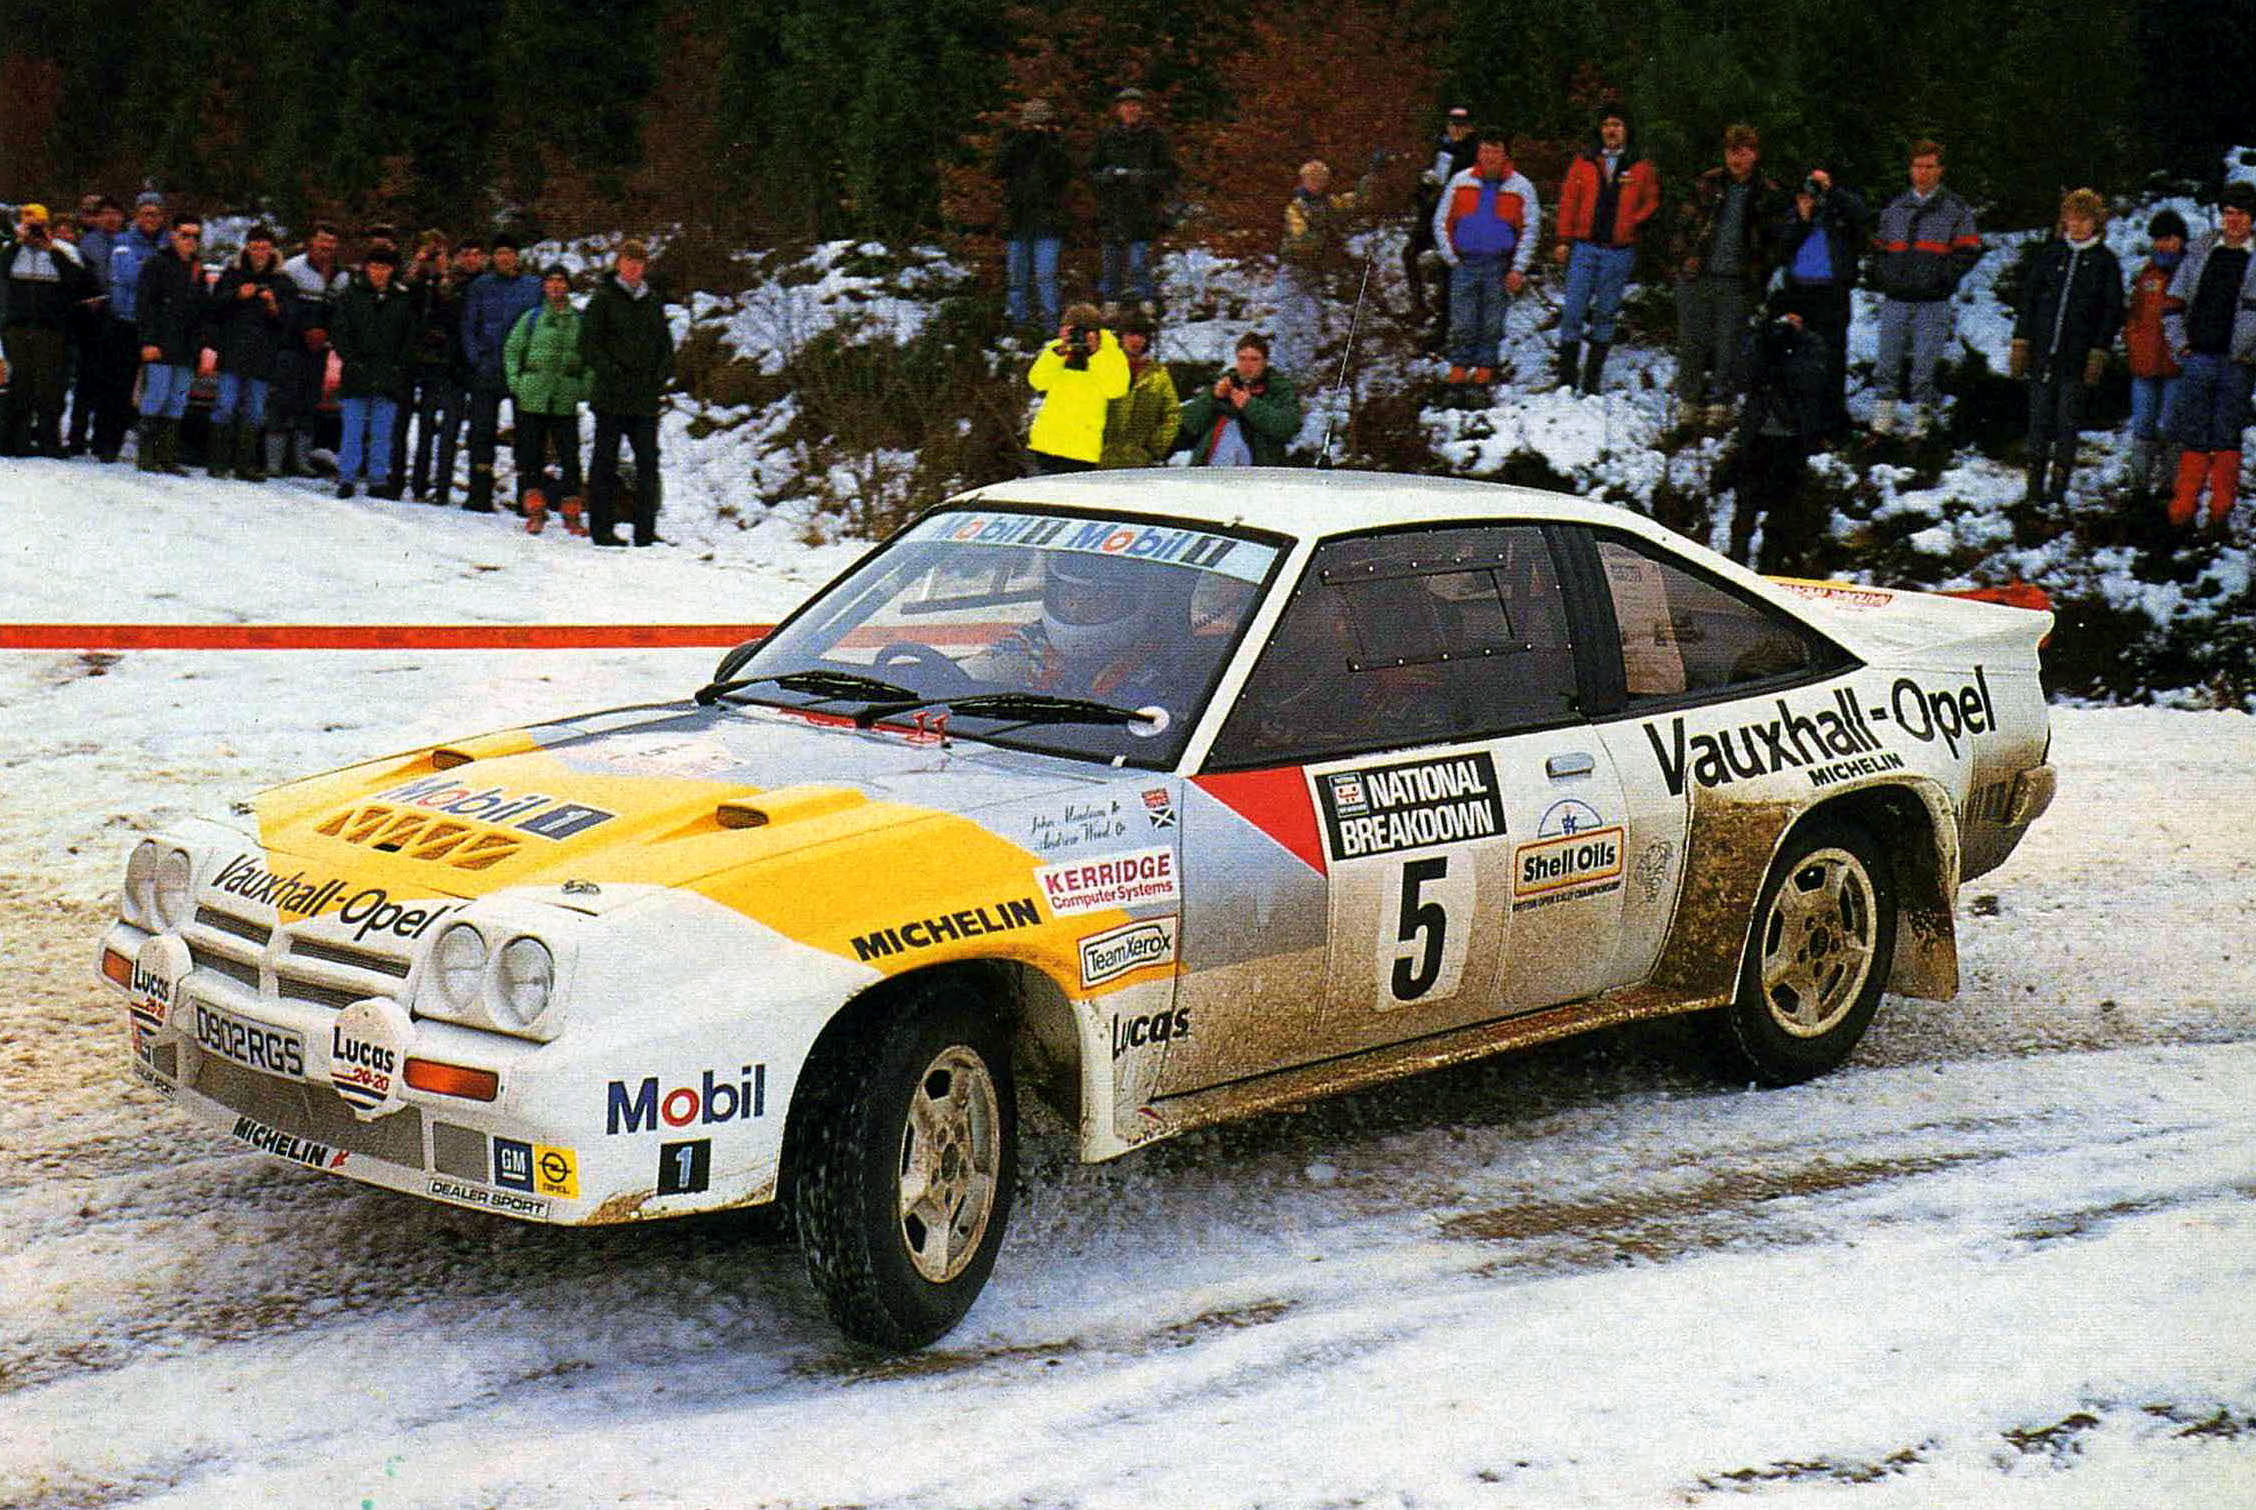 Rear-wheel drive was a huge disadvantage in mid '80s rallying, yet the Manta 400 was developed into a formable rally car